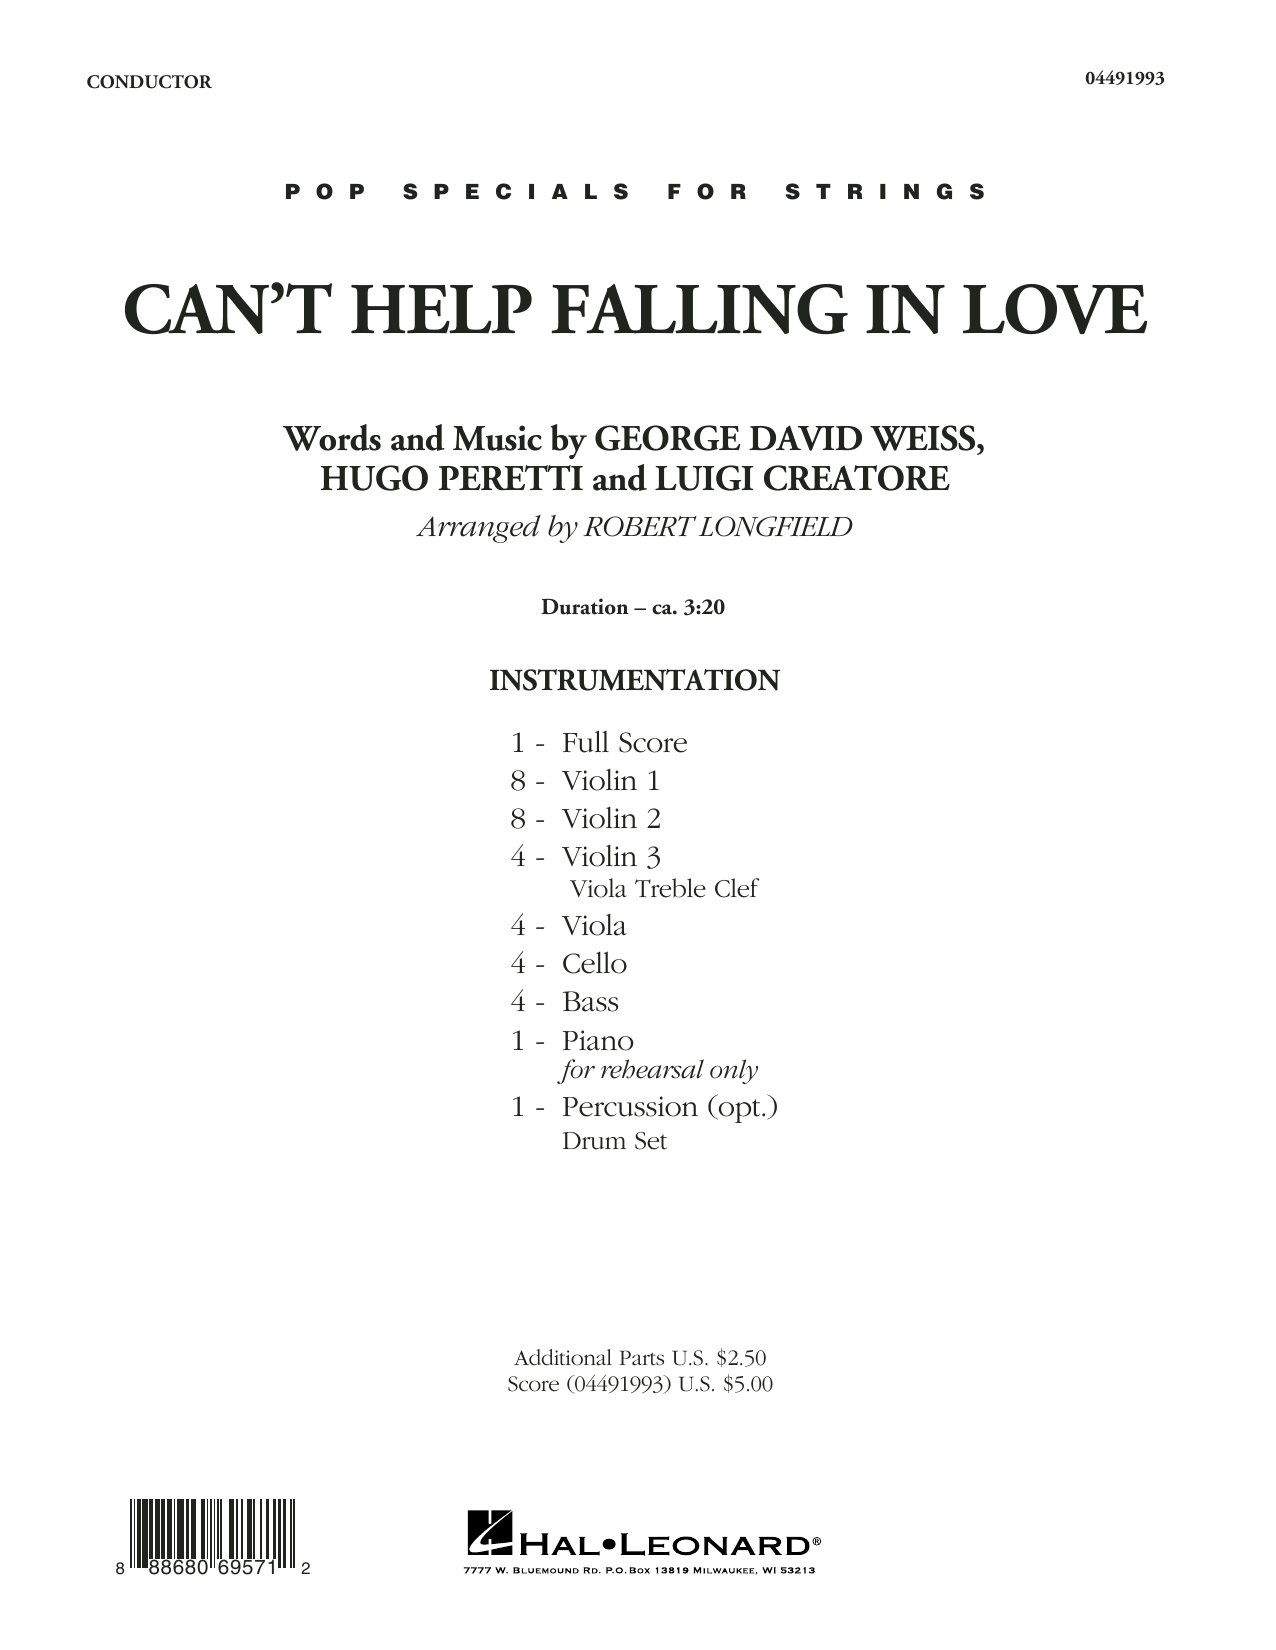 Can't Help Falling in Love - Conductor Score (Full Score) (Orchestra)